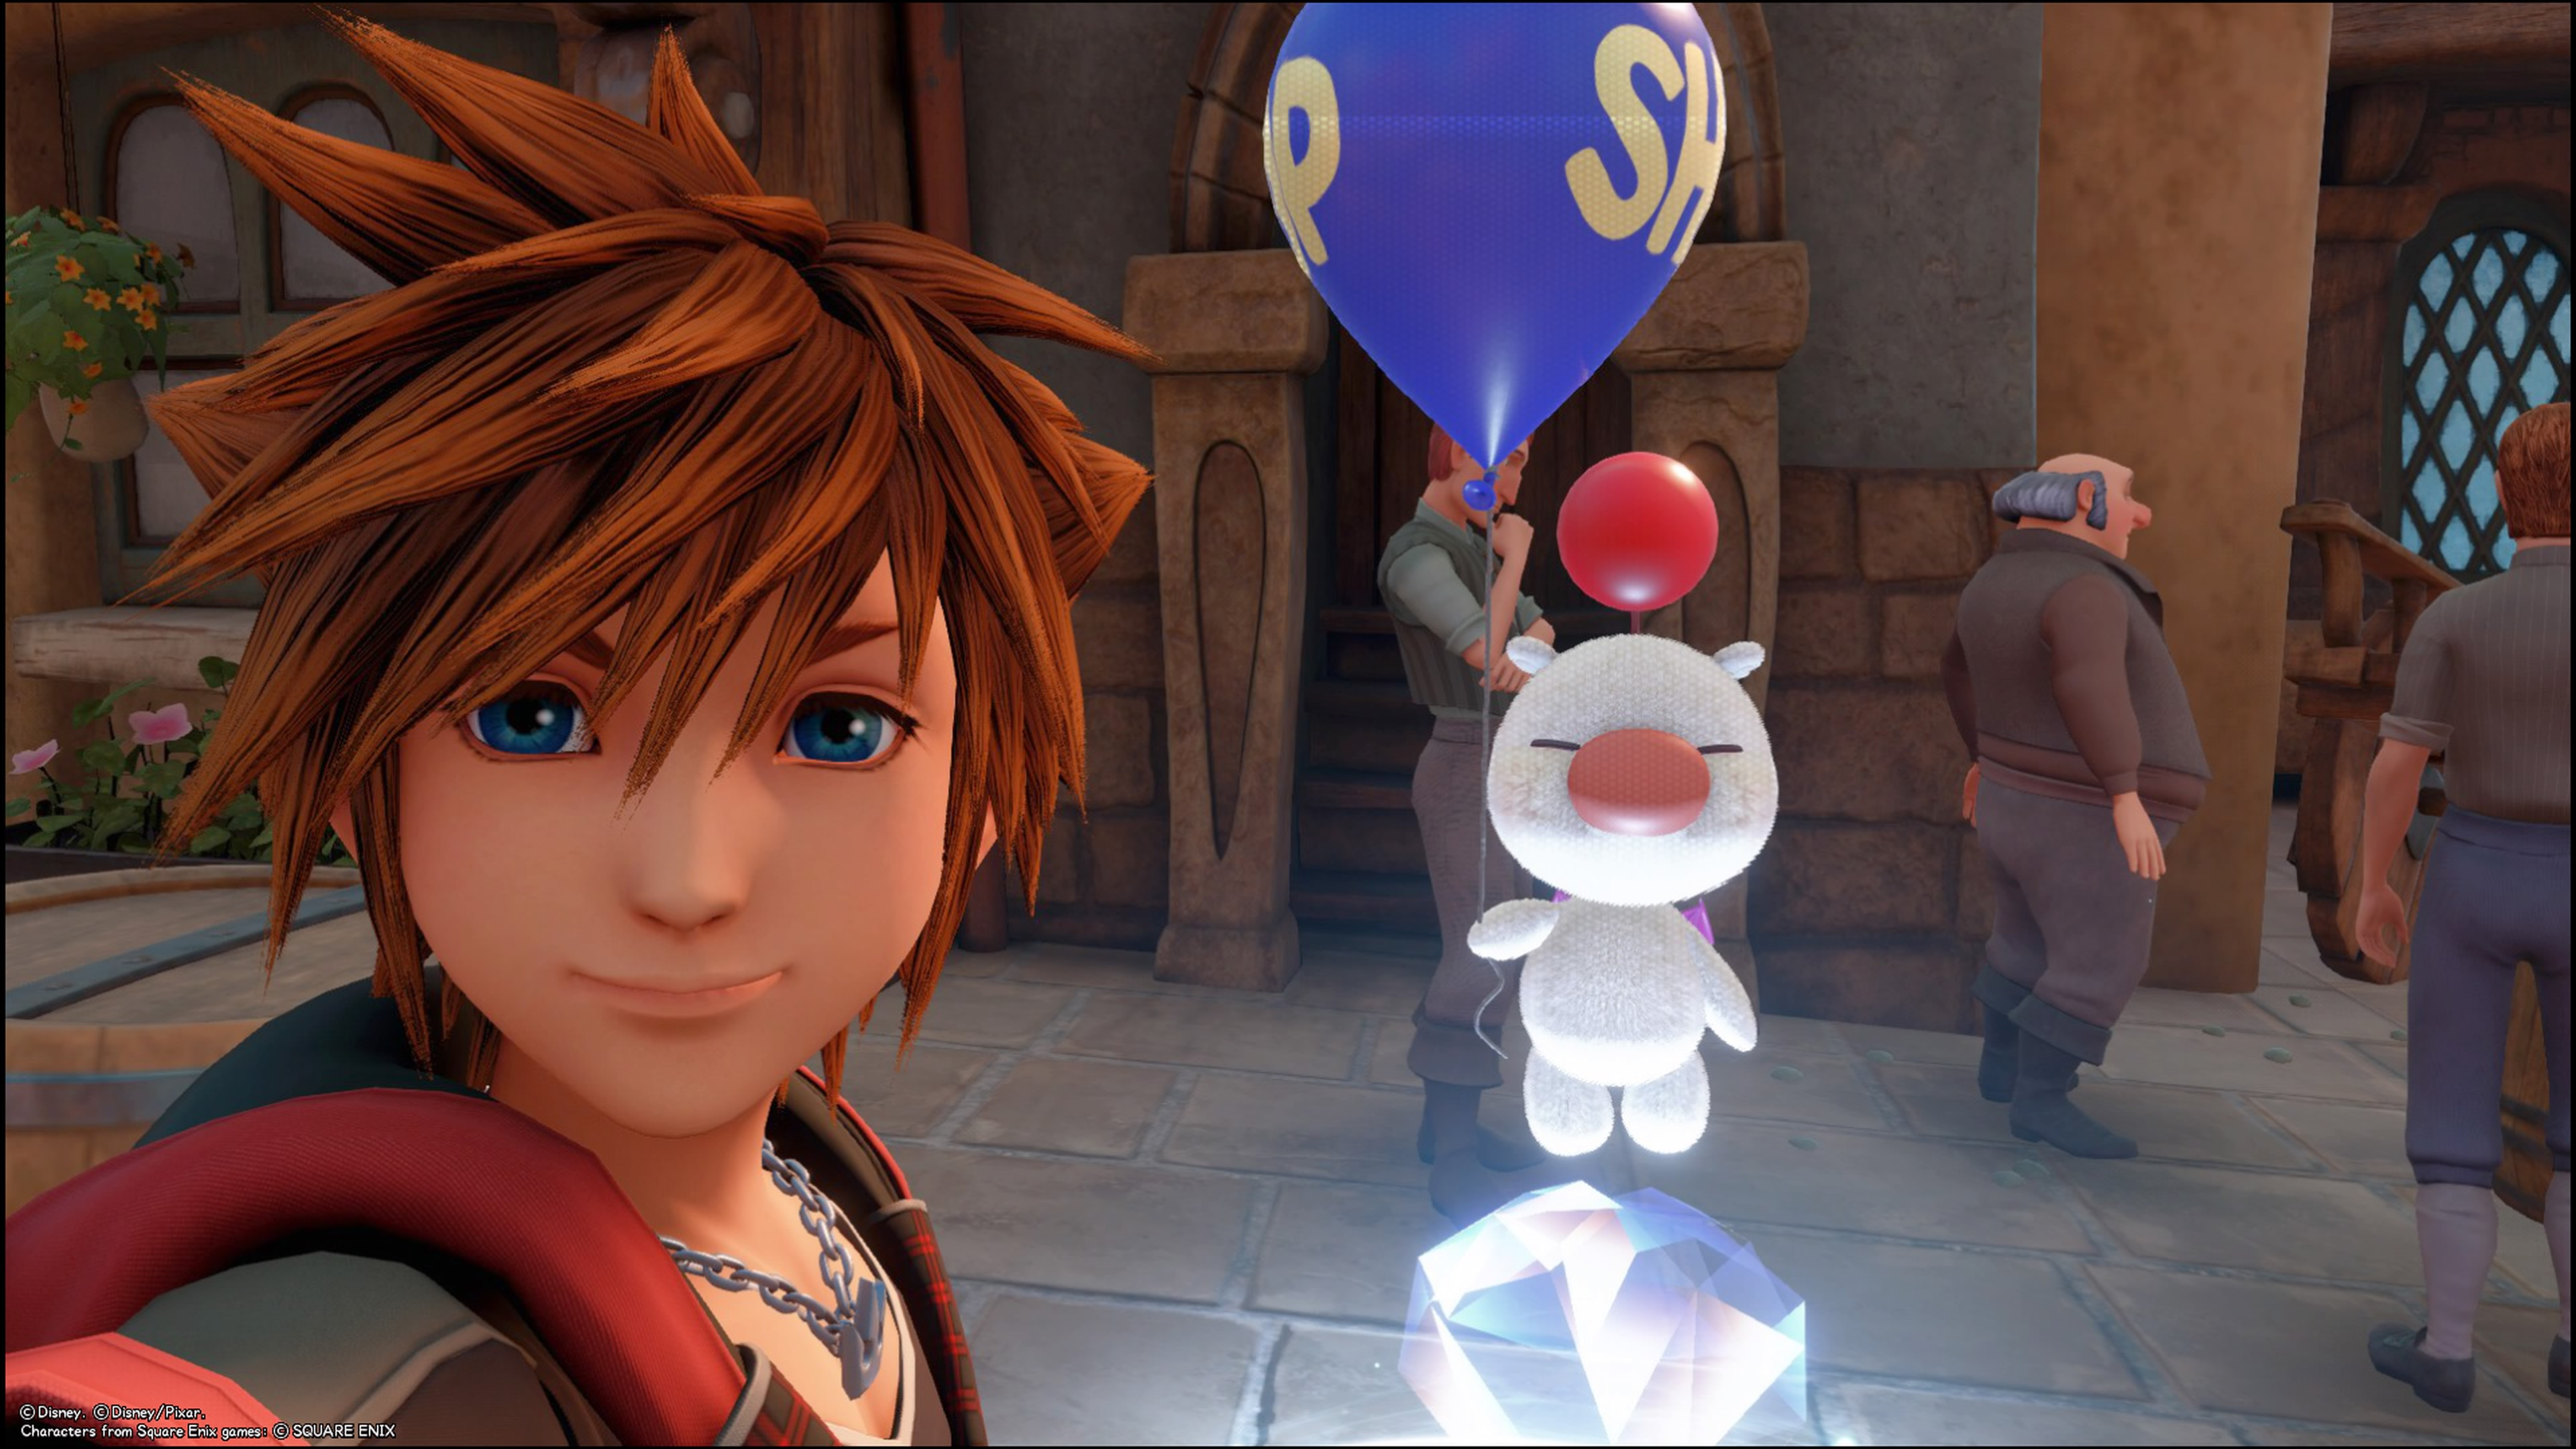 Kingdom Hearts 3 Photo Missions Guide How To Complete The Moogle Pictures In Kingdom Hearts 3 Gamesradar